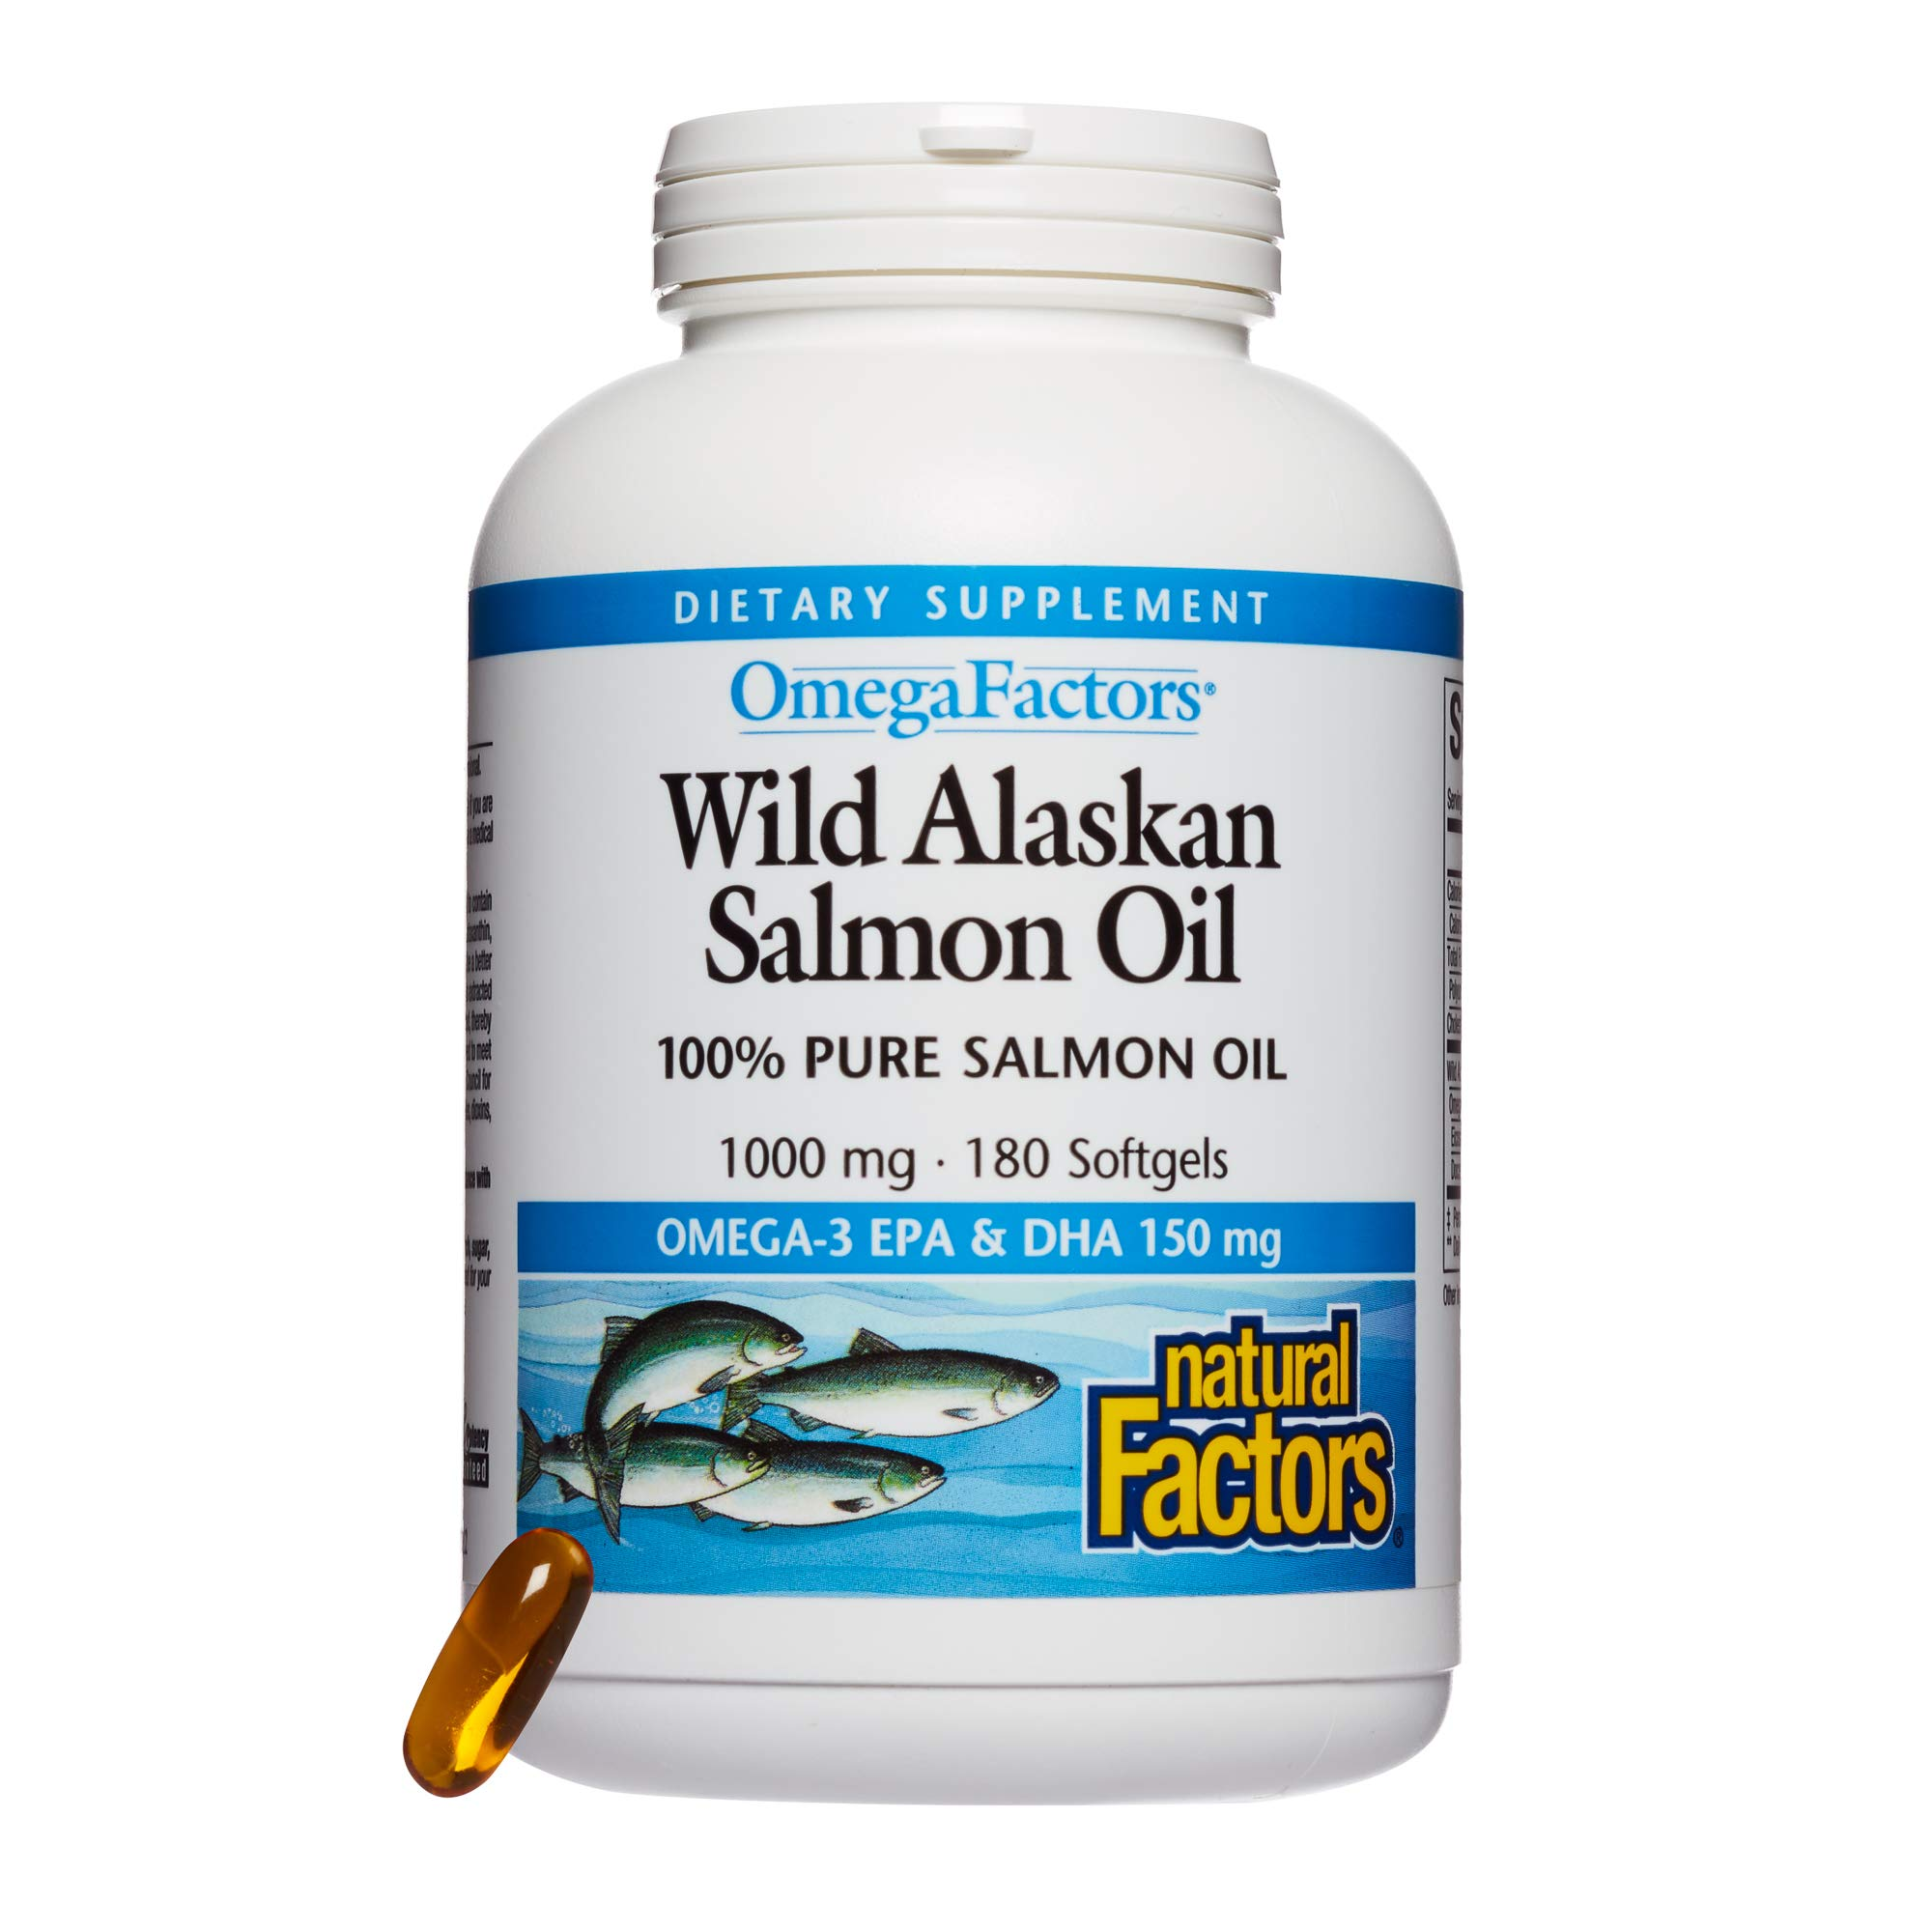 Omega Factors by Natural Factors, Wild Alaskan Salmon Oil, Supports Heart and Brain Health with Omega-3 DHA and EPA, 180 softgels (180 servings)